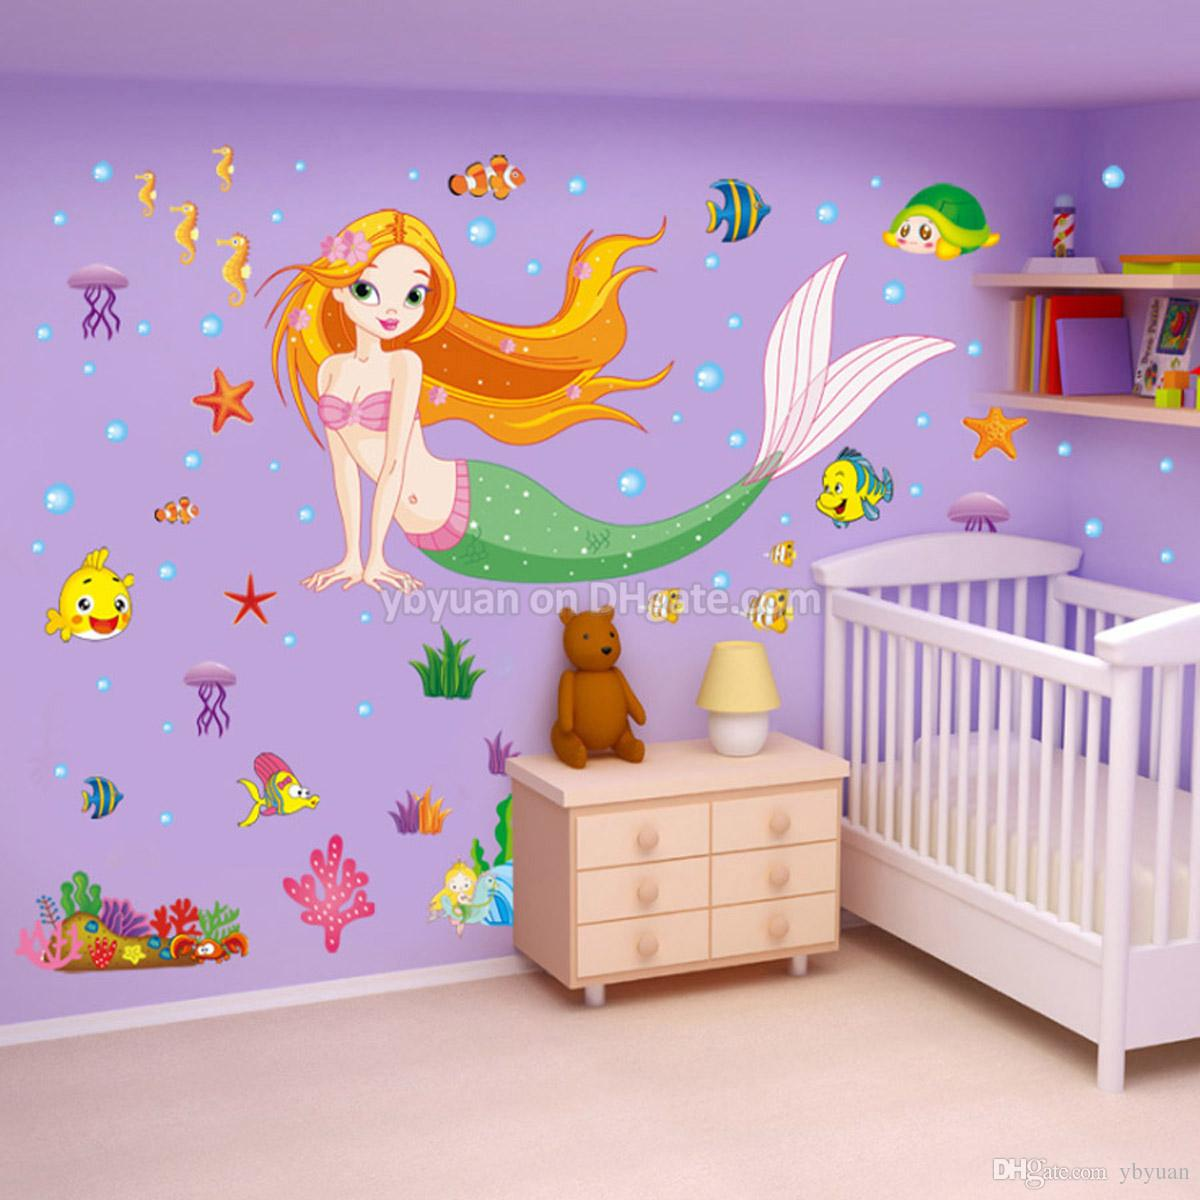 Kids Bedroom Background removable mermaid wall decals flatfish stickers children living